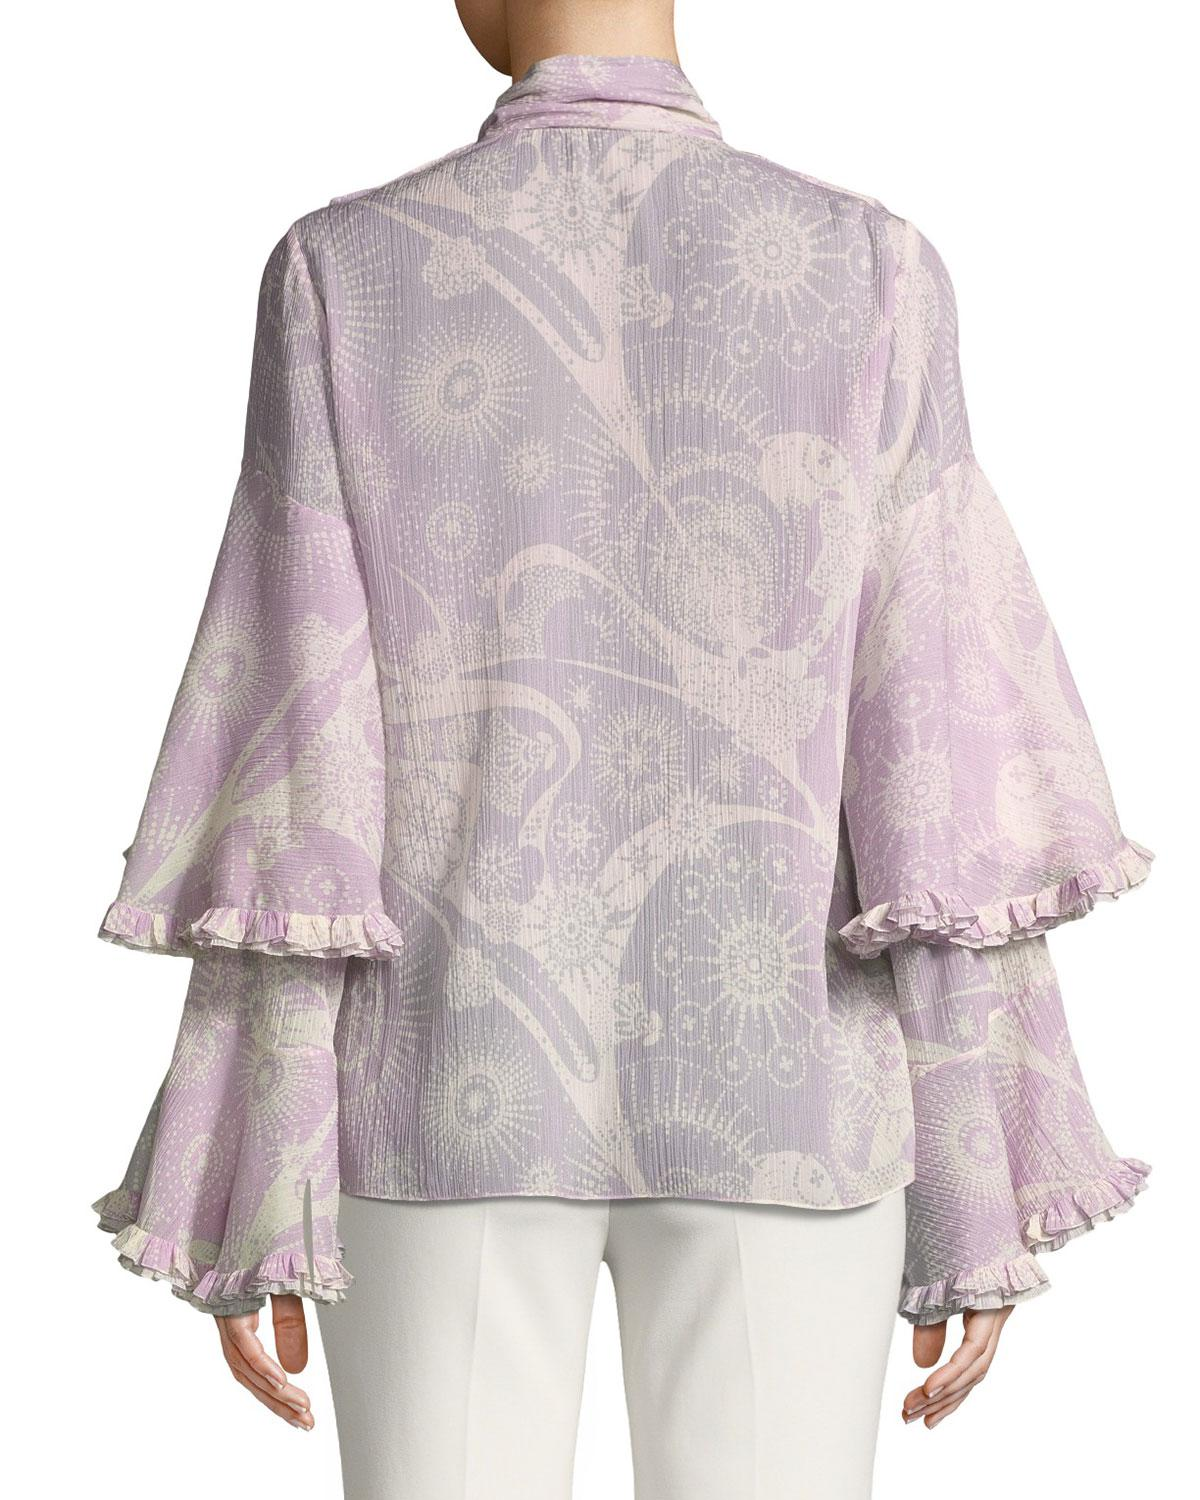 ruffle sleeved blouse - Pink & Purple Chloé Outlet Footlocker 8QWTyoZsQ